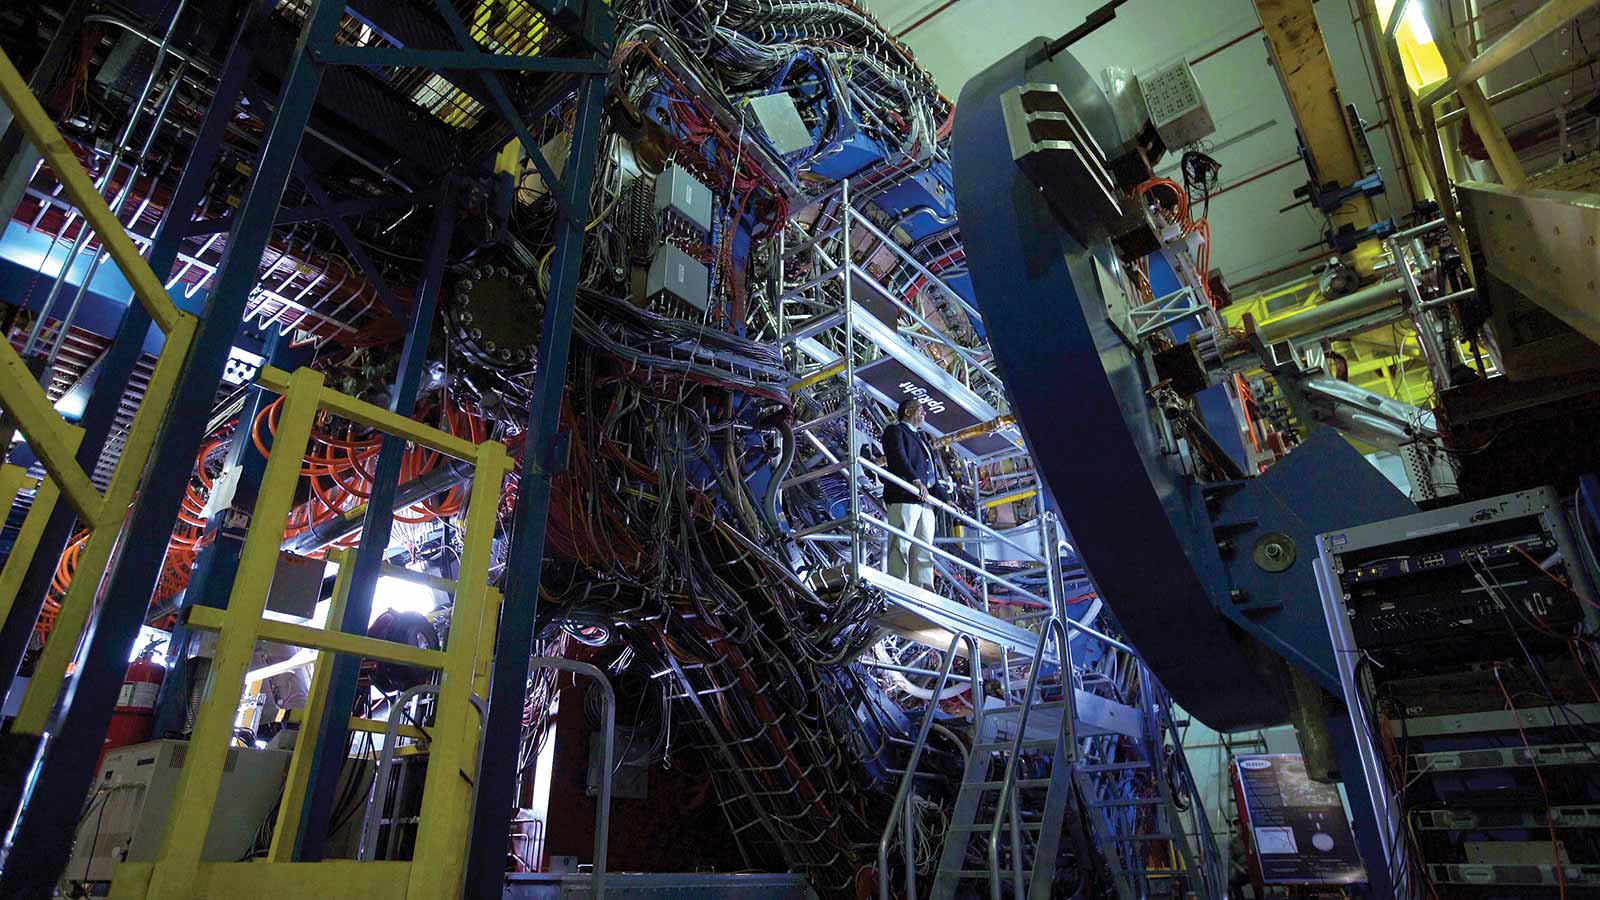 Roy Lacey within the STAR detector, which specializes in tracking the thousands of particles produced by each ion collision at RHIC.